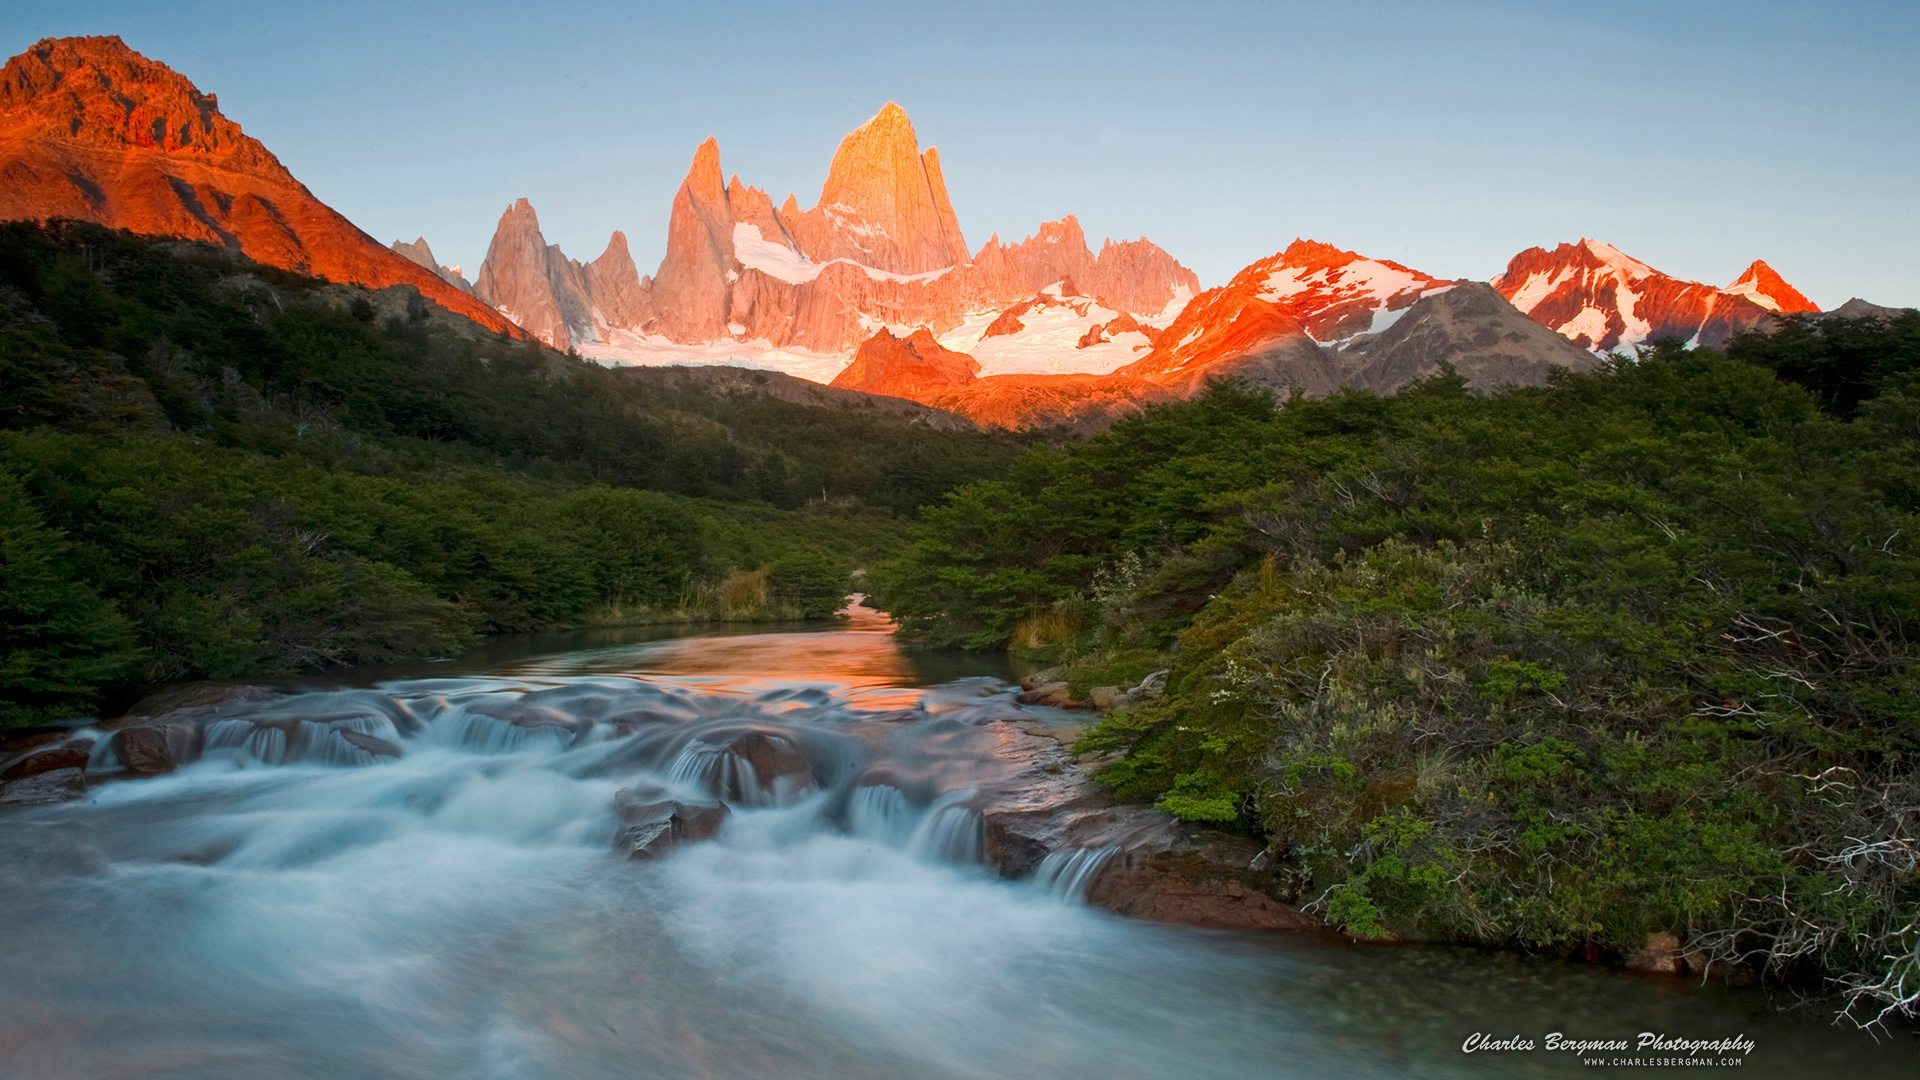 Sunrise Mountains Wallpapers In Jpg Format For Free Download